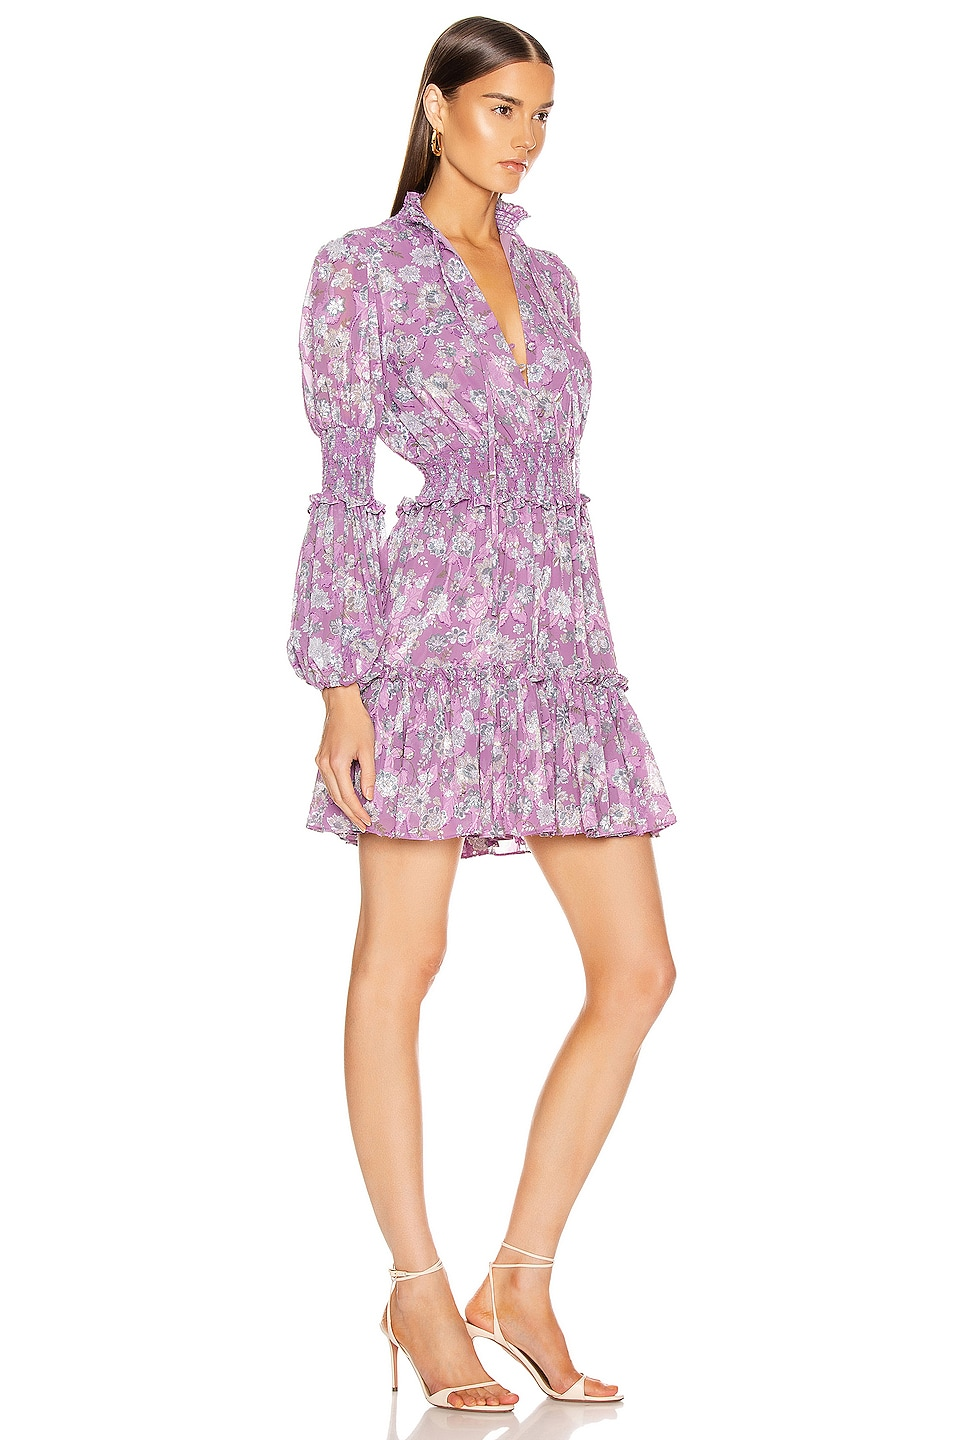 Image 2 of Alexis Rosewell Dress in Lilac Floral